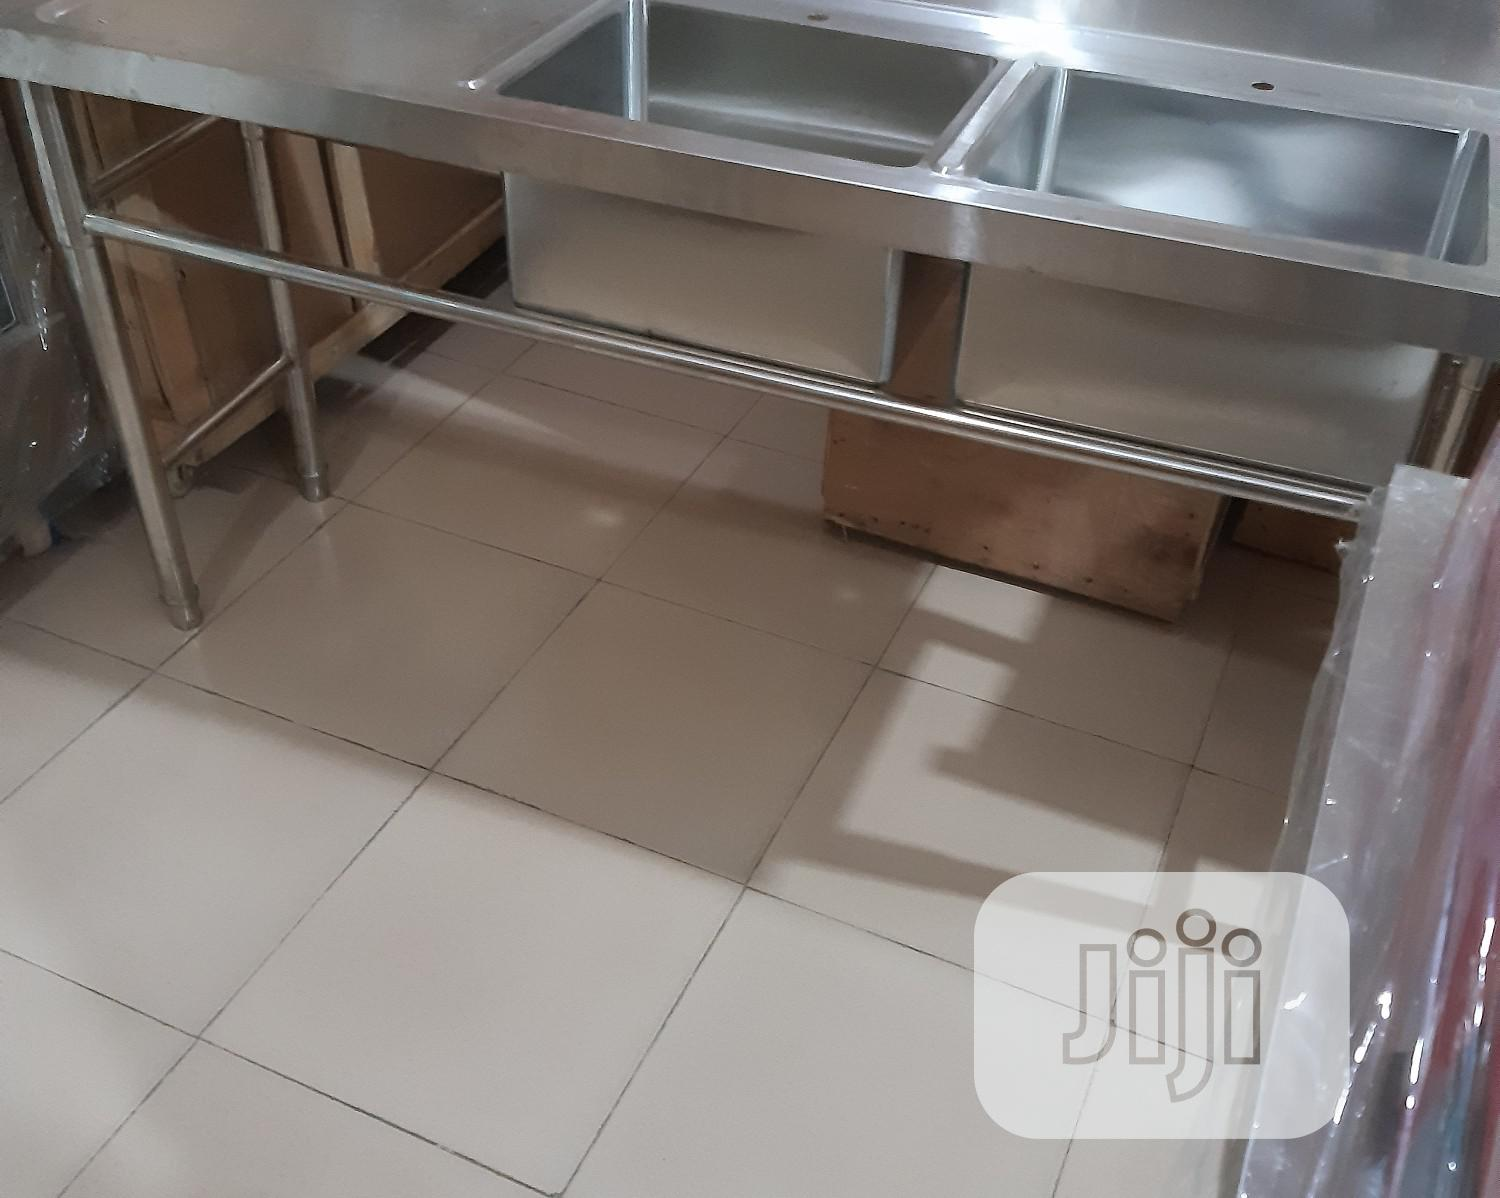 Stainless Working Sink